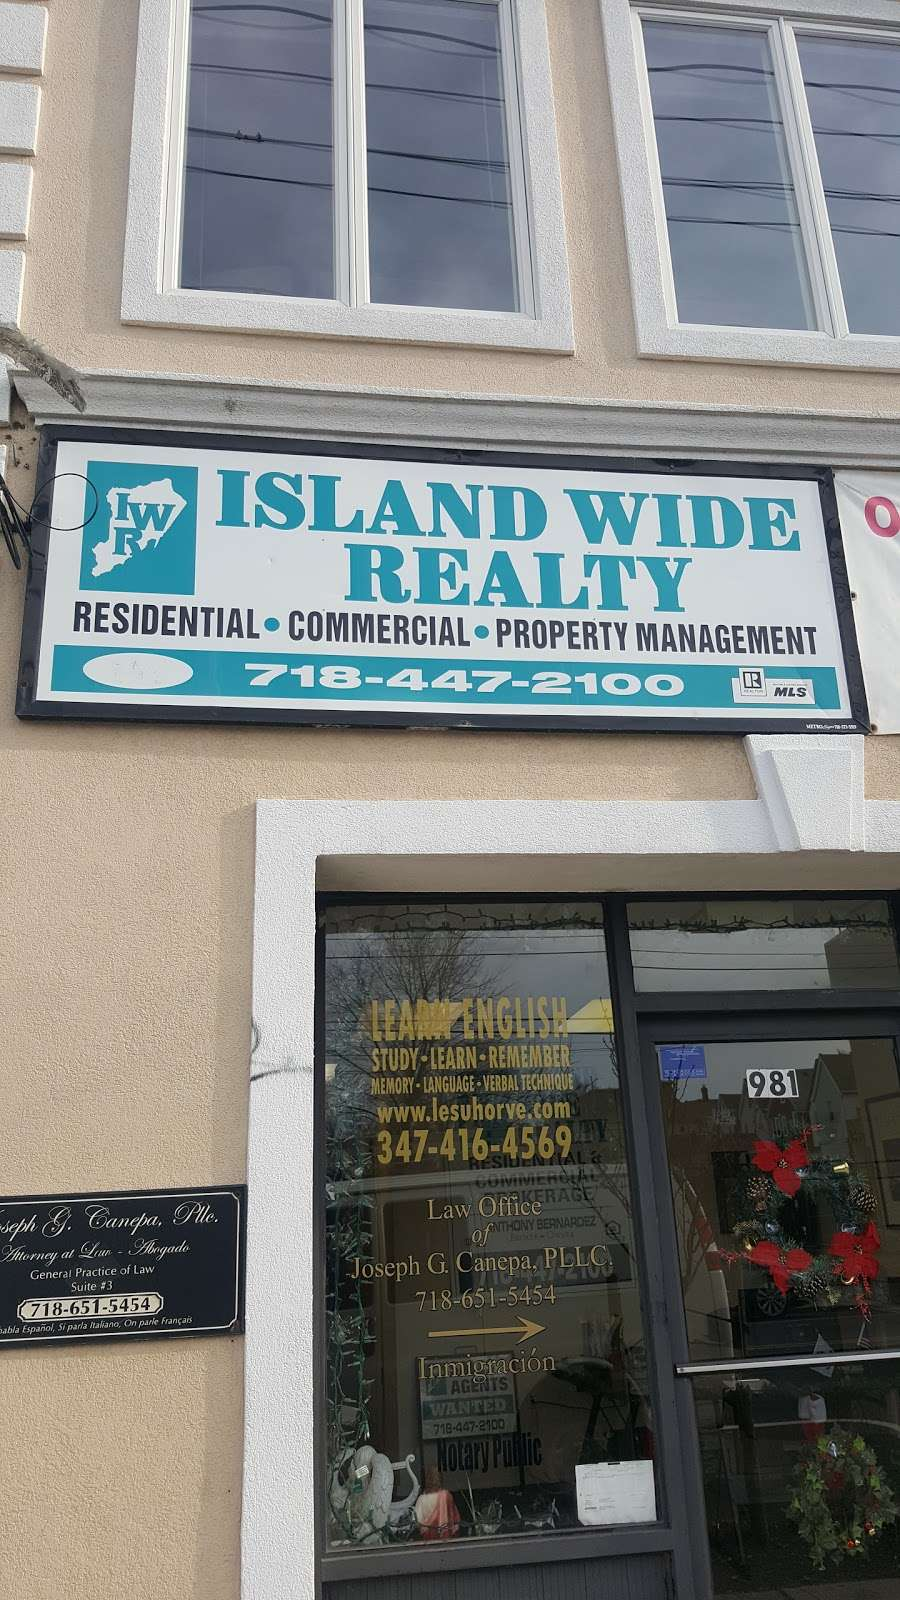 Island Wide Realty - real estate agency  | Photo 1 of 1 | Address: 981 Bay St, Staten Island, NY 10305, USA | Phone: (718) 447-2100